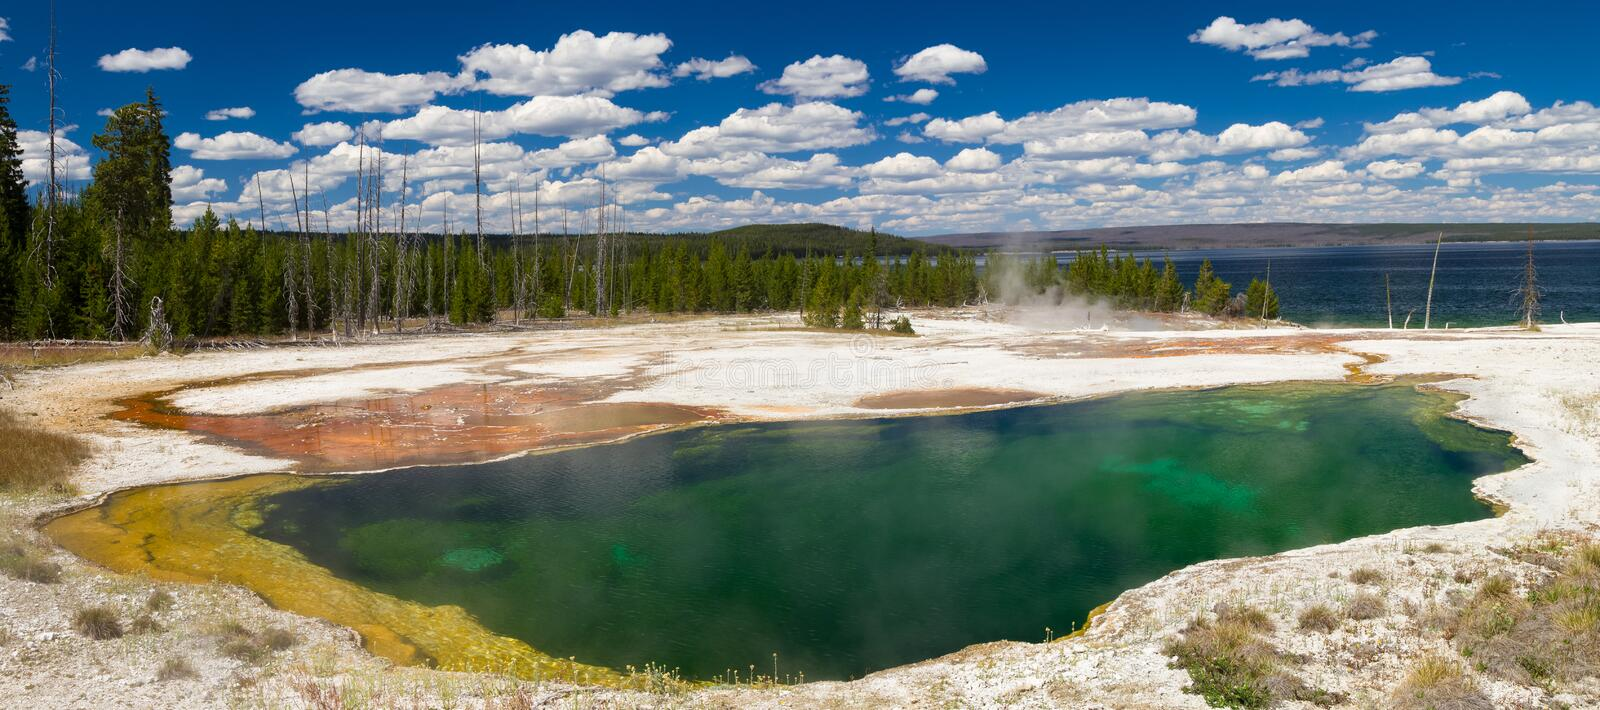 Abyss Pool at West Thumb Geyser Basin. Yellowstone National Park, Wyoming, USA stock images